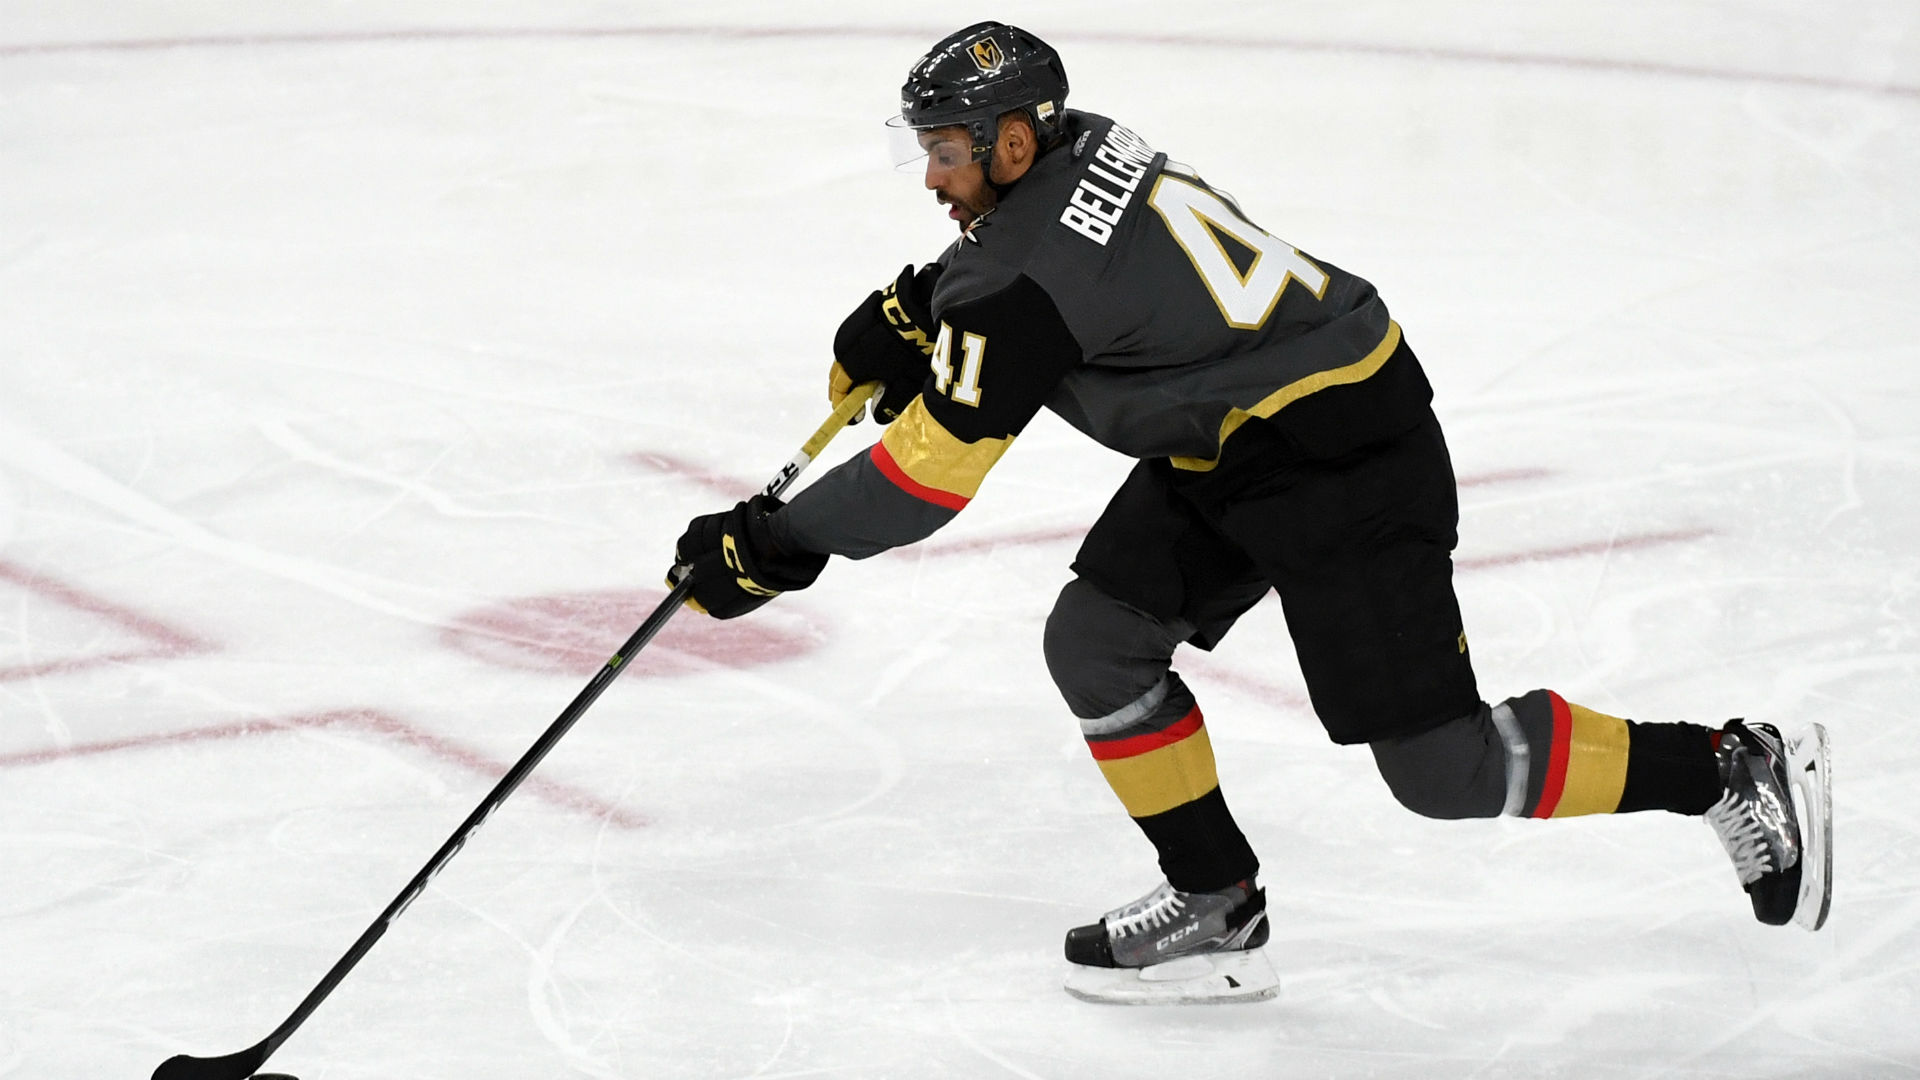 Golden Knights' Bellemare goes between-the-legs in goal against Canadiens